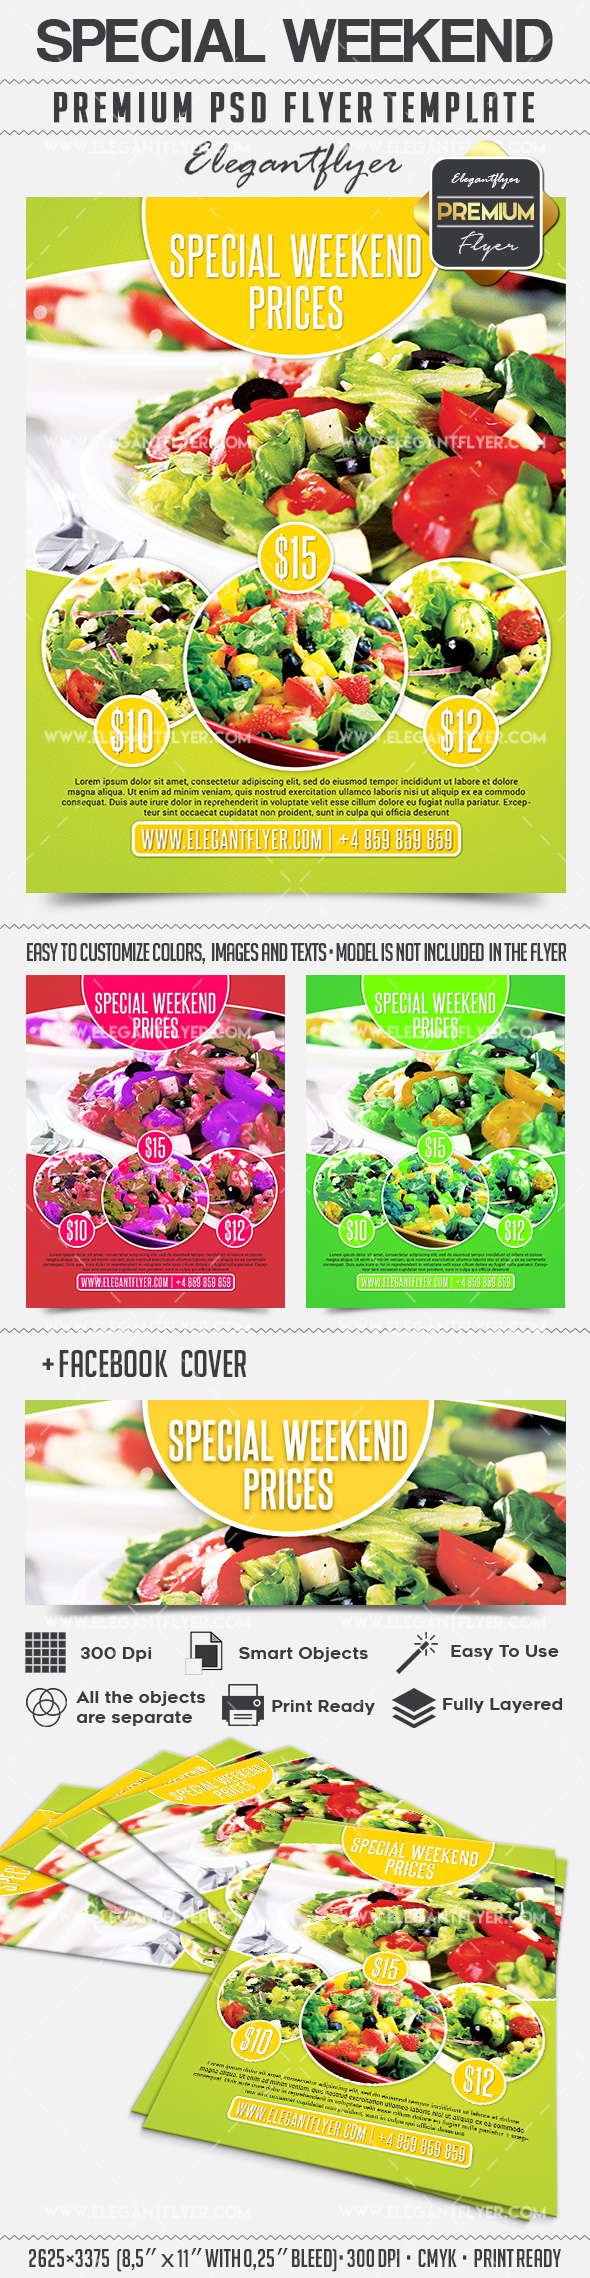 special weekend offer flyer psd template facebook cover by special weekend offer flyer psd template facebook cover